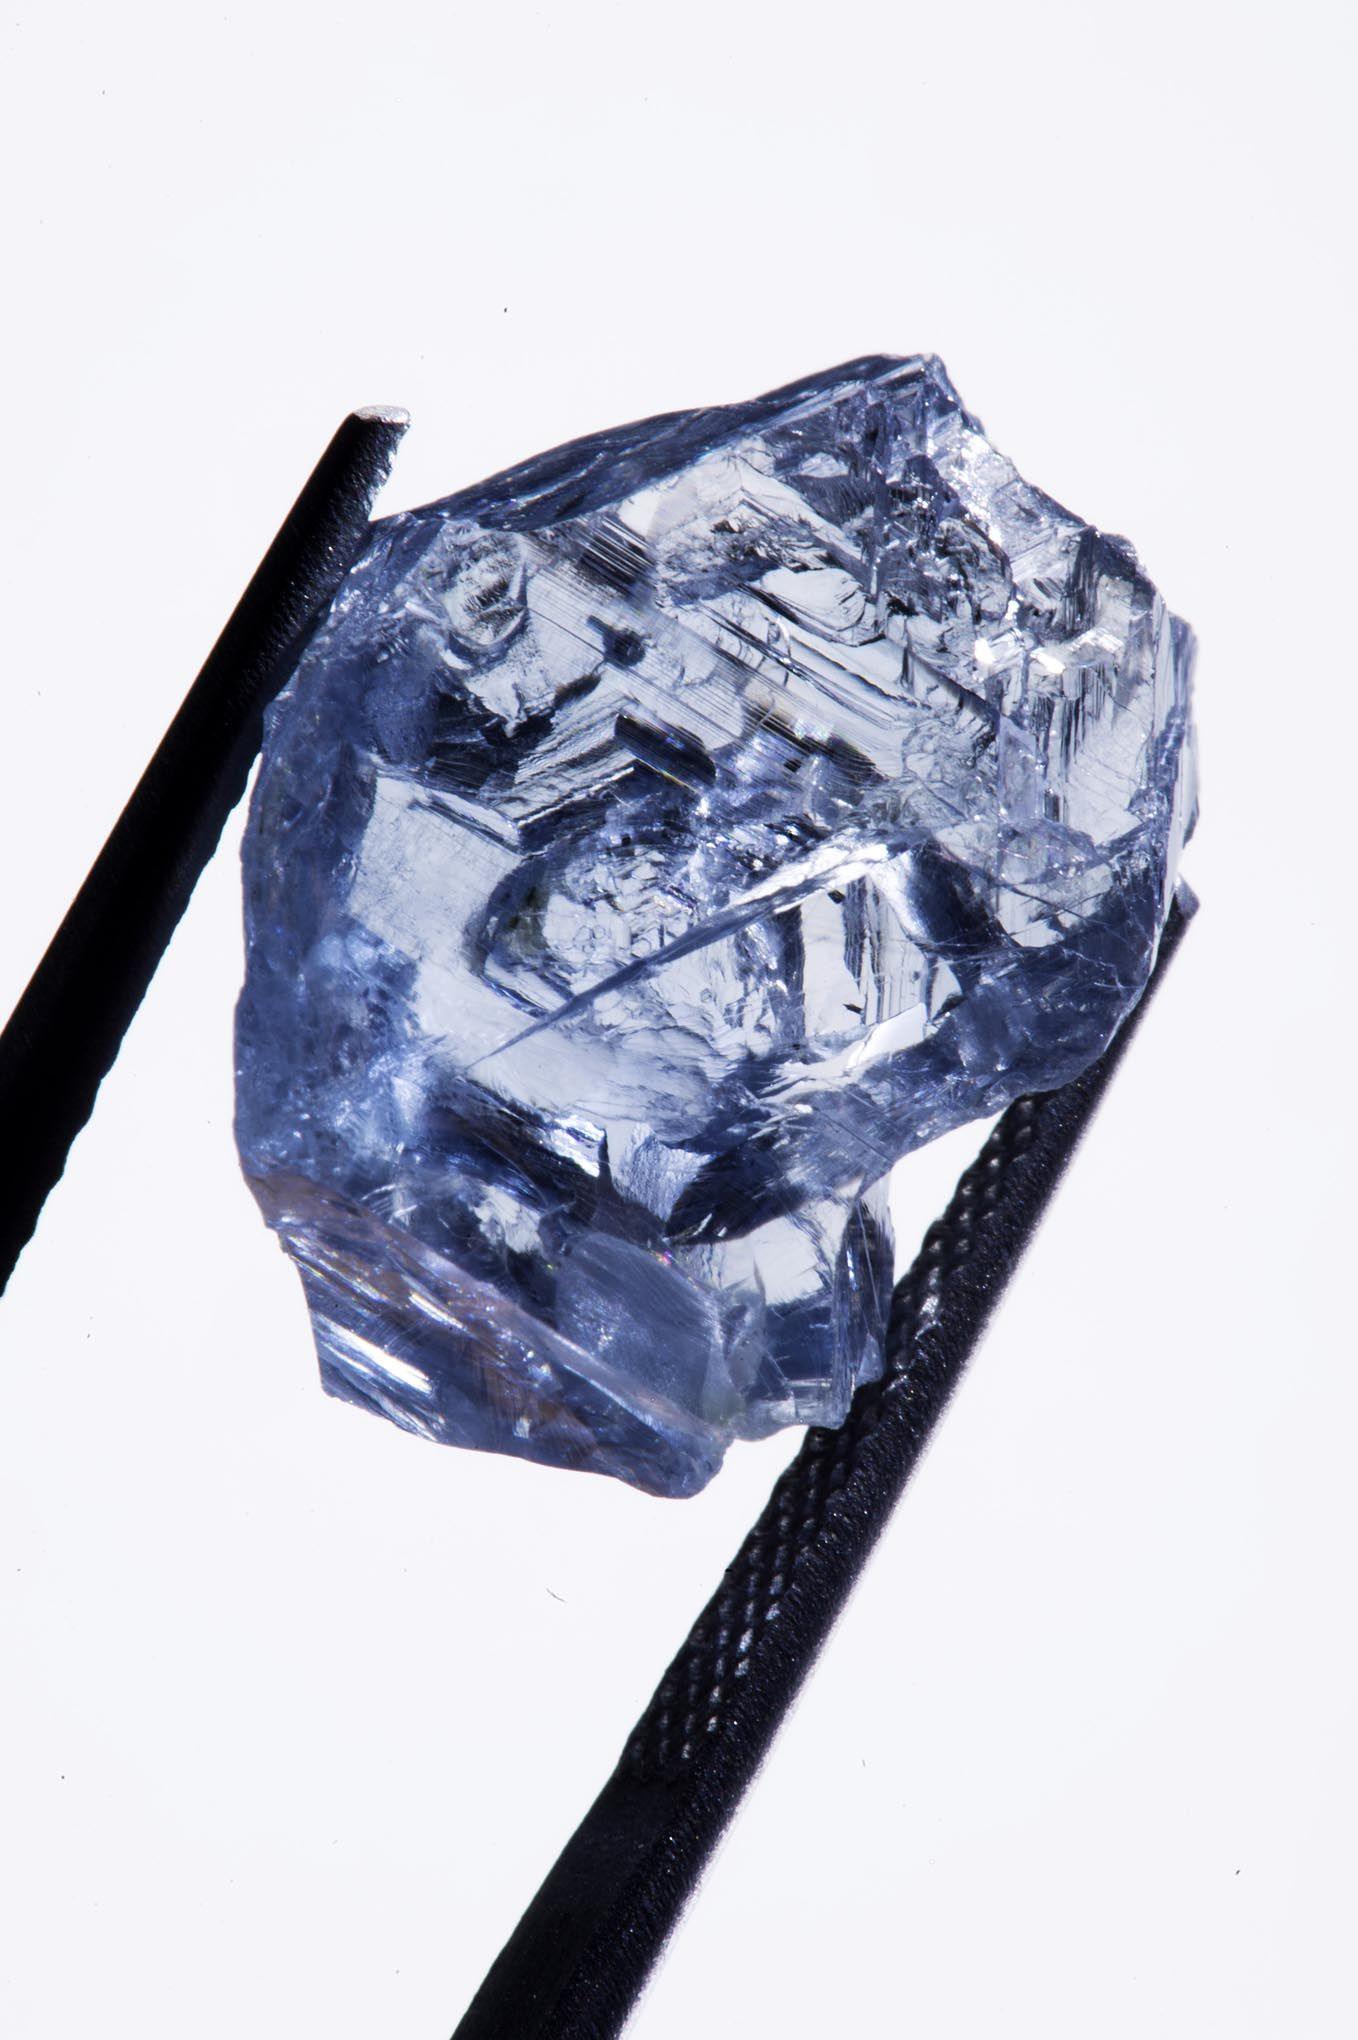 25 5 Carat Blue Diamond Found in South Africa